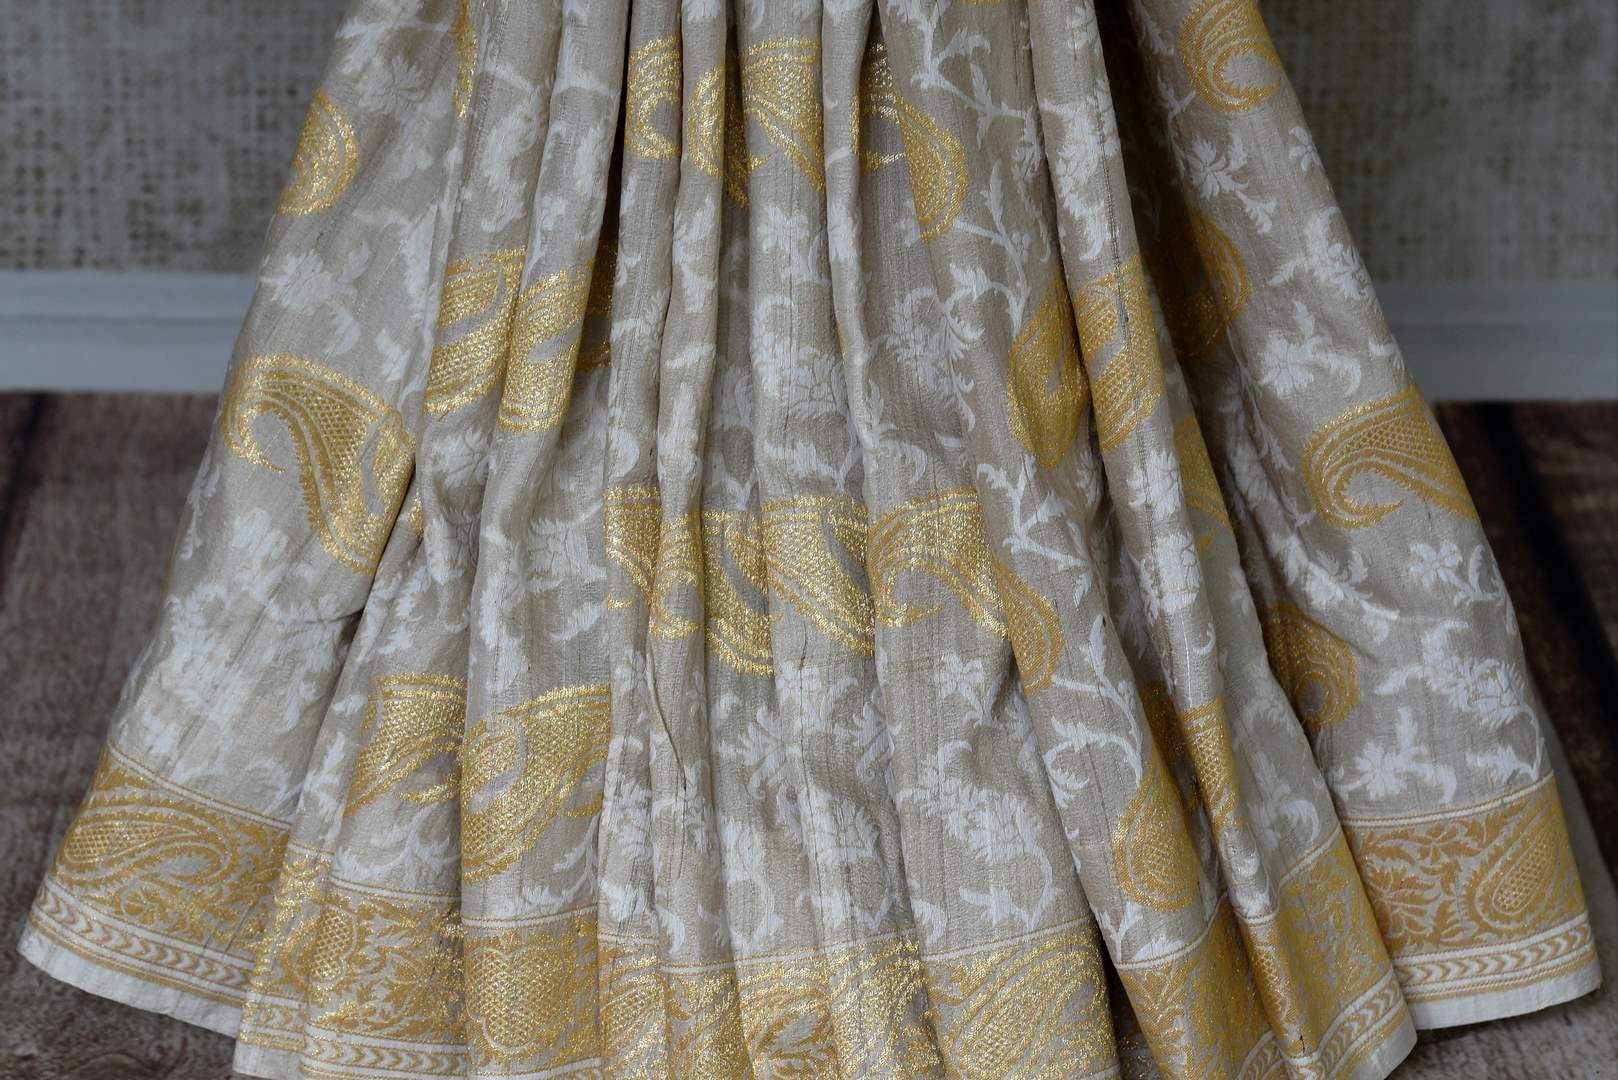 Buy elegant off-white khaddi Banarasi saree with zari border online in USA. Adorn your style with a range of exquisite handwoven sarees from Pure Elegance Indian clothing store in USA. We have an exquisite range of Indian designer sarees, silk saris, Banarasi saris and many other varieties also available at our online store.-pleats